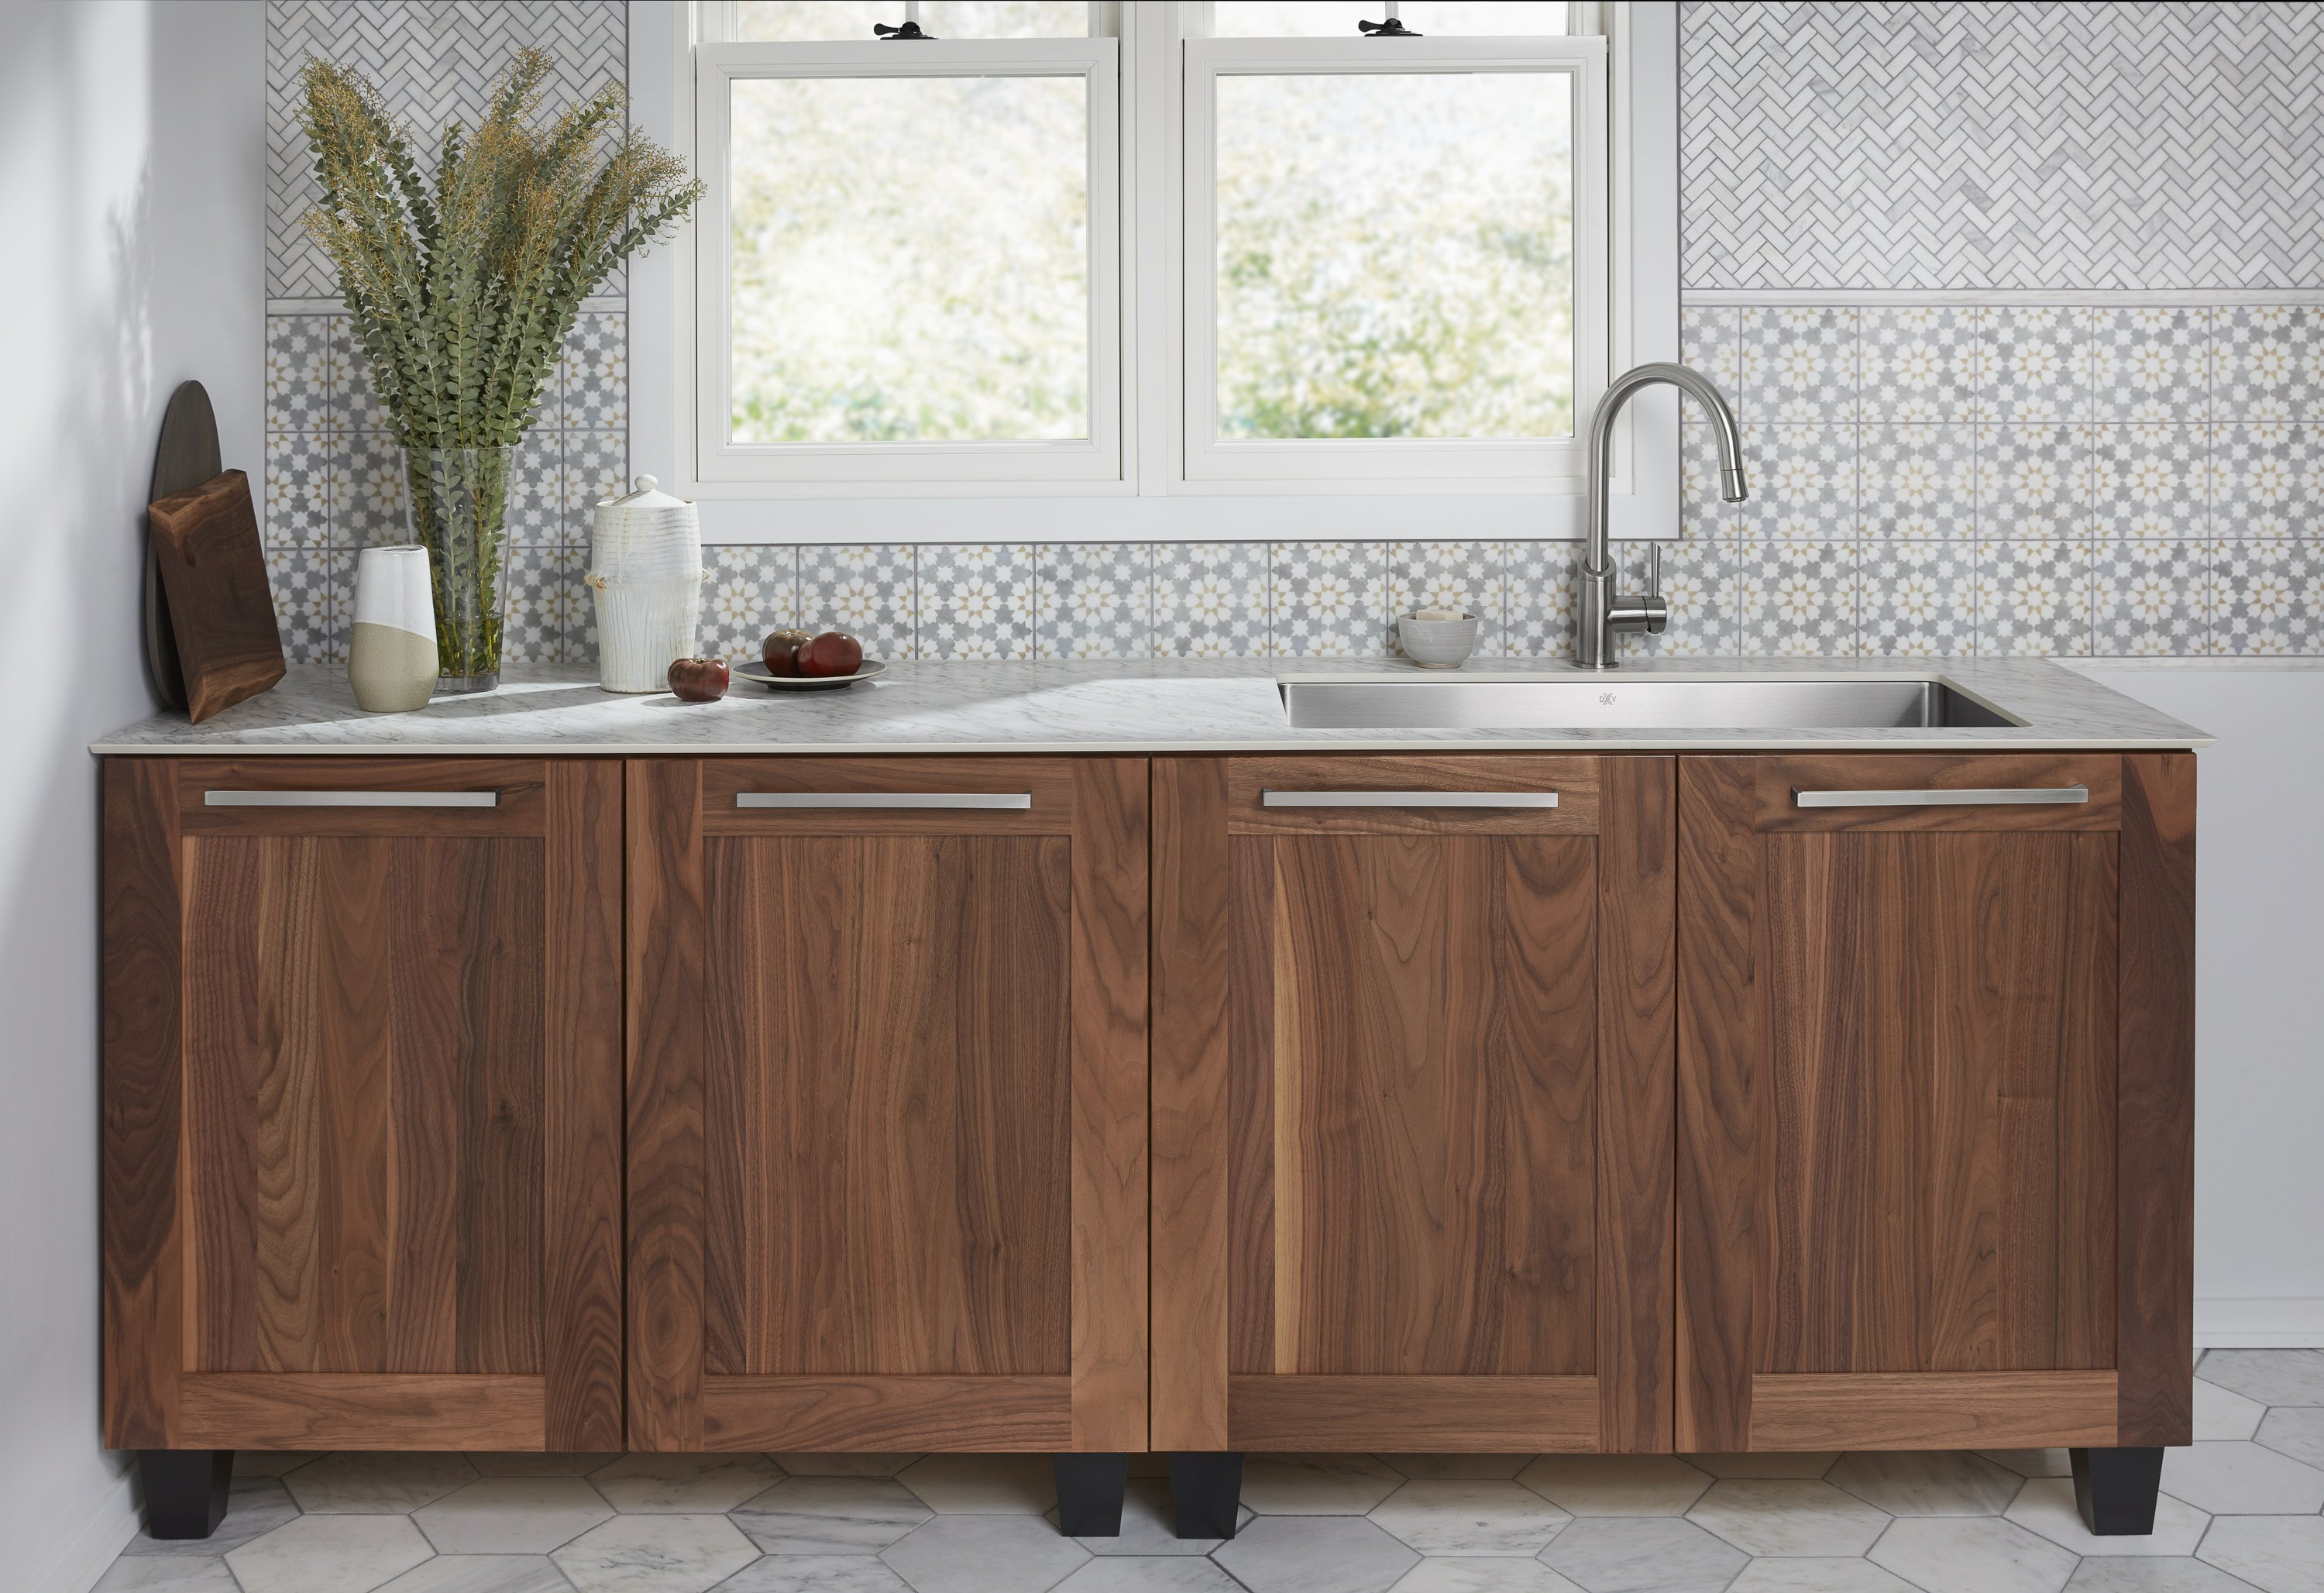 Wilsonart's Ultra-Thin Countertops, Wetwall™ Bath Solutions and Arctic-Inspired Laminates Showcased at KBIS 2019